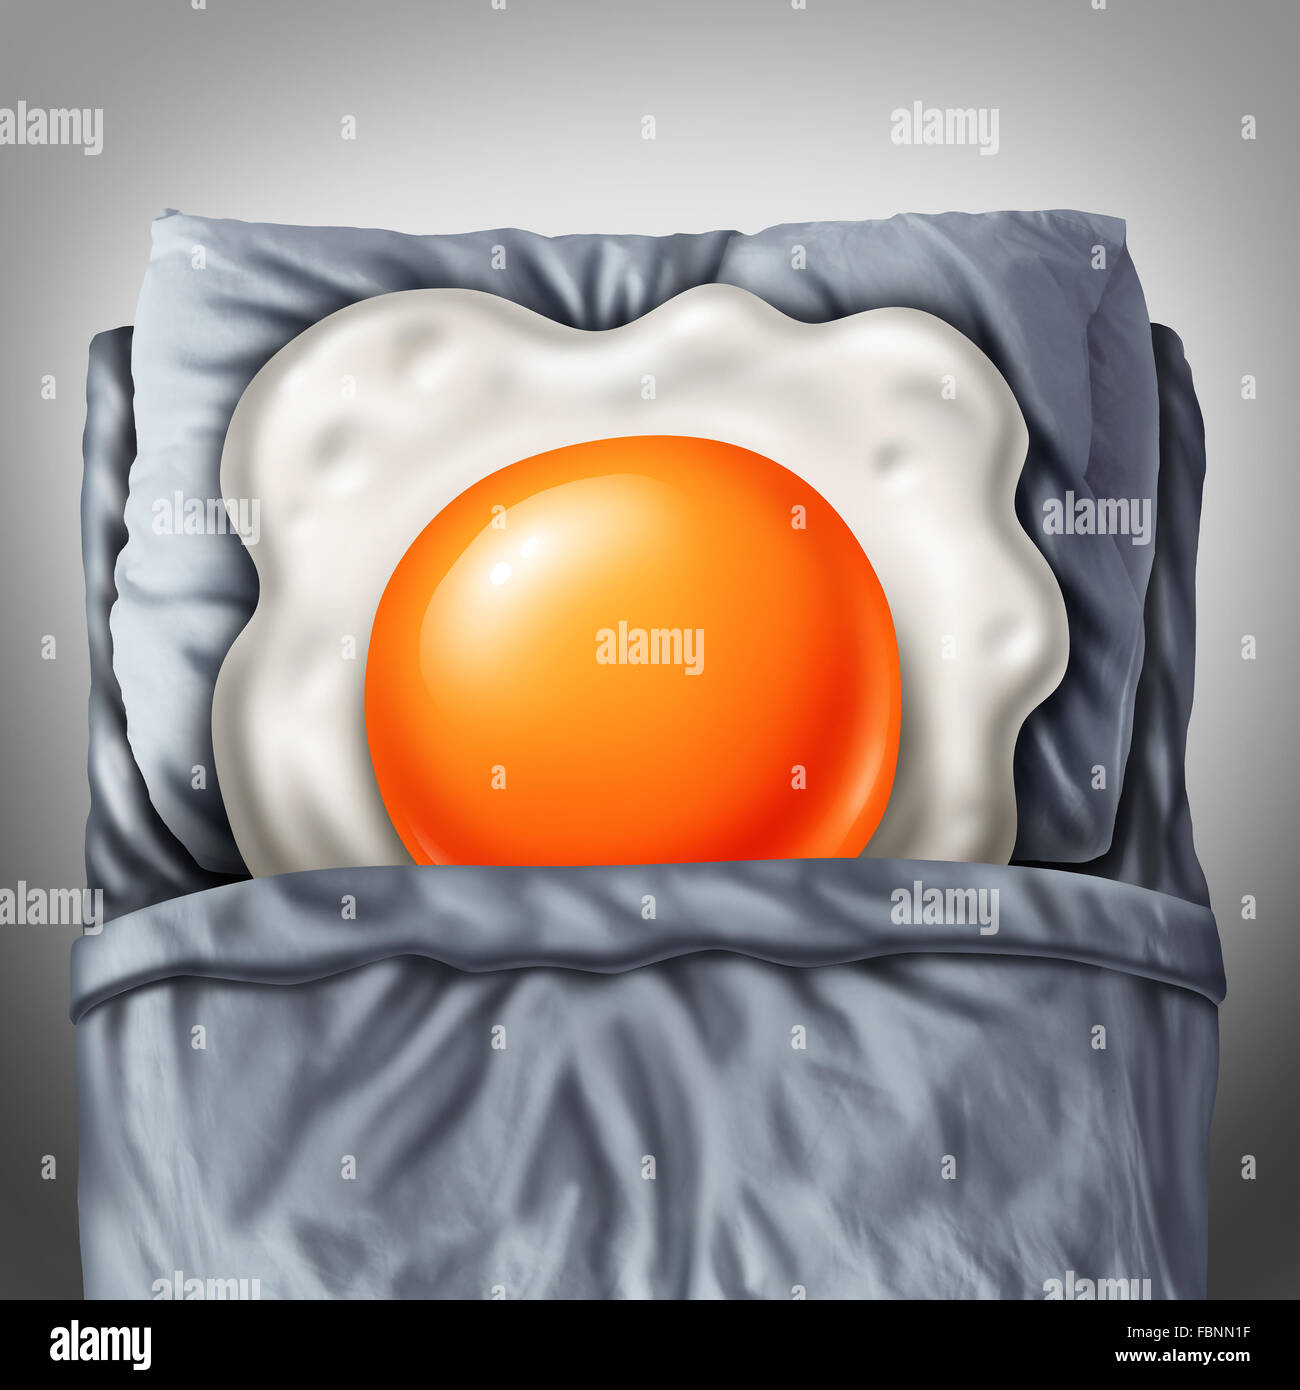 Bed and breakfast concept as a morning fried egg sunny side up resting on a pillow in a room as a metaphor for lodging - Stock Image